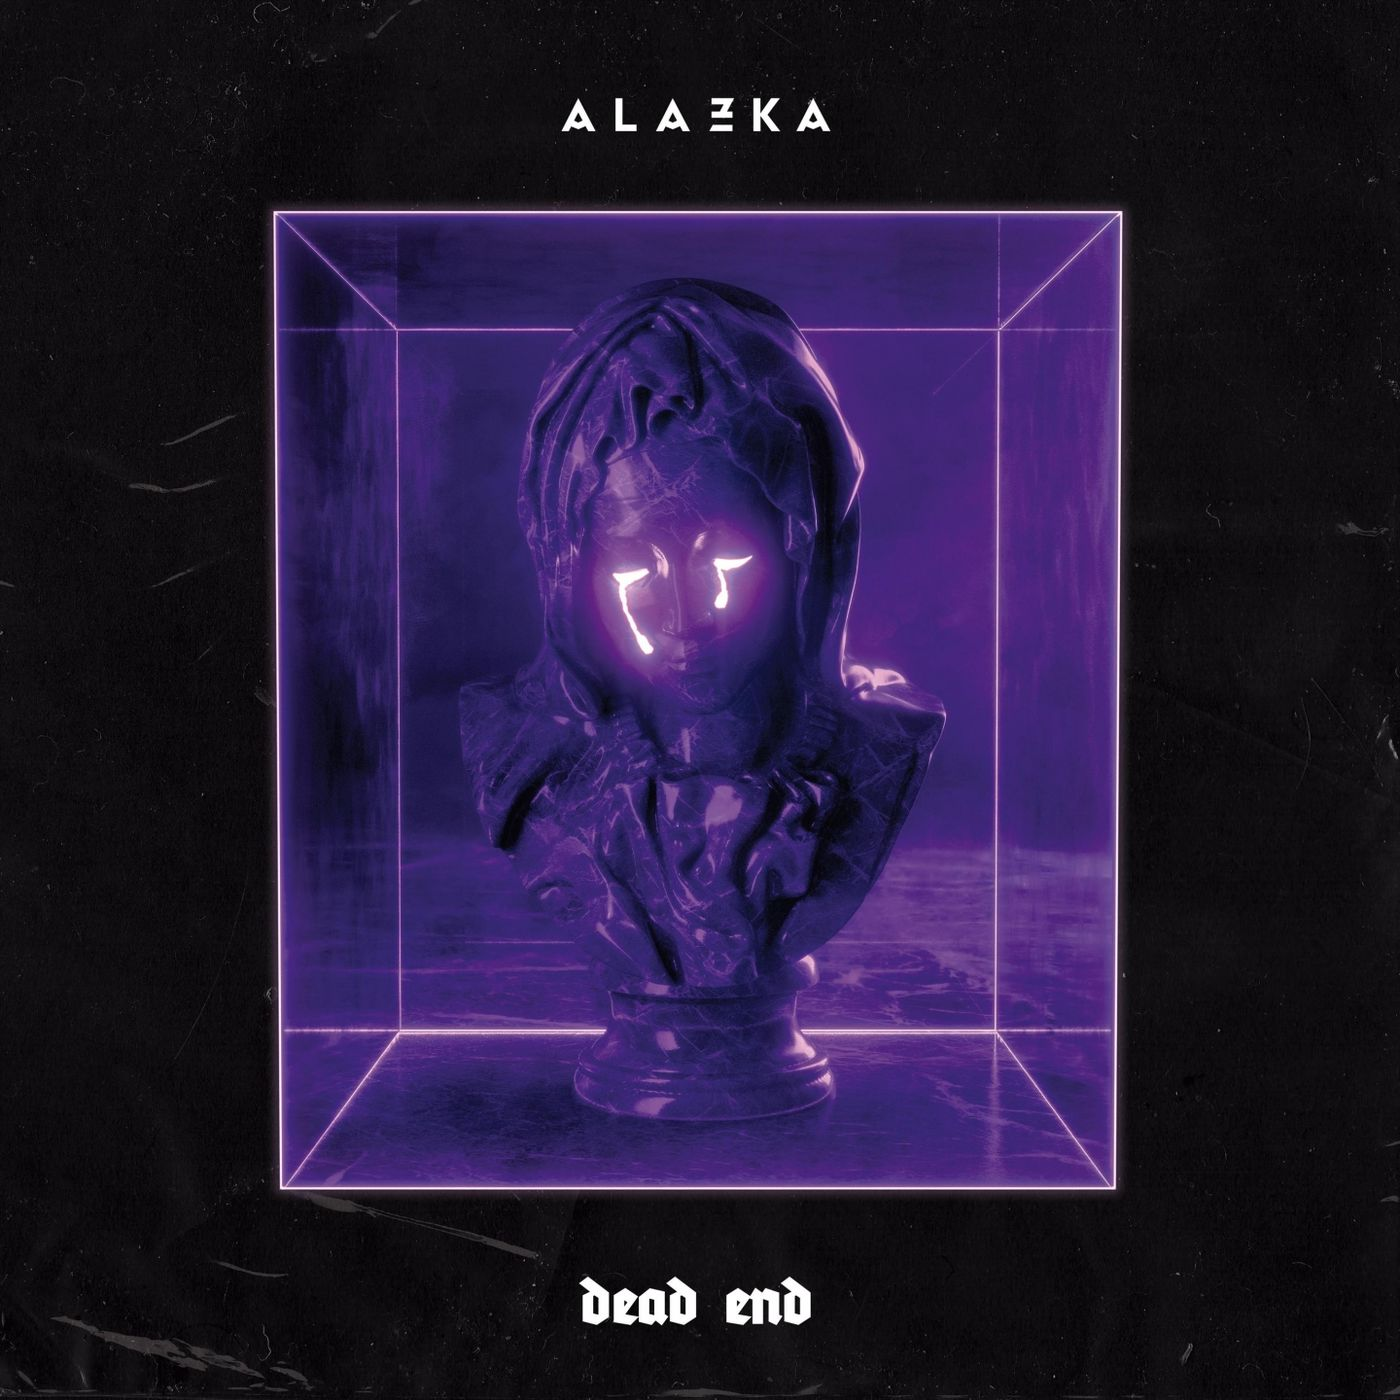 Alazka - Dead End [single] (2019)